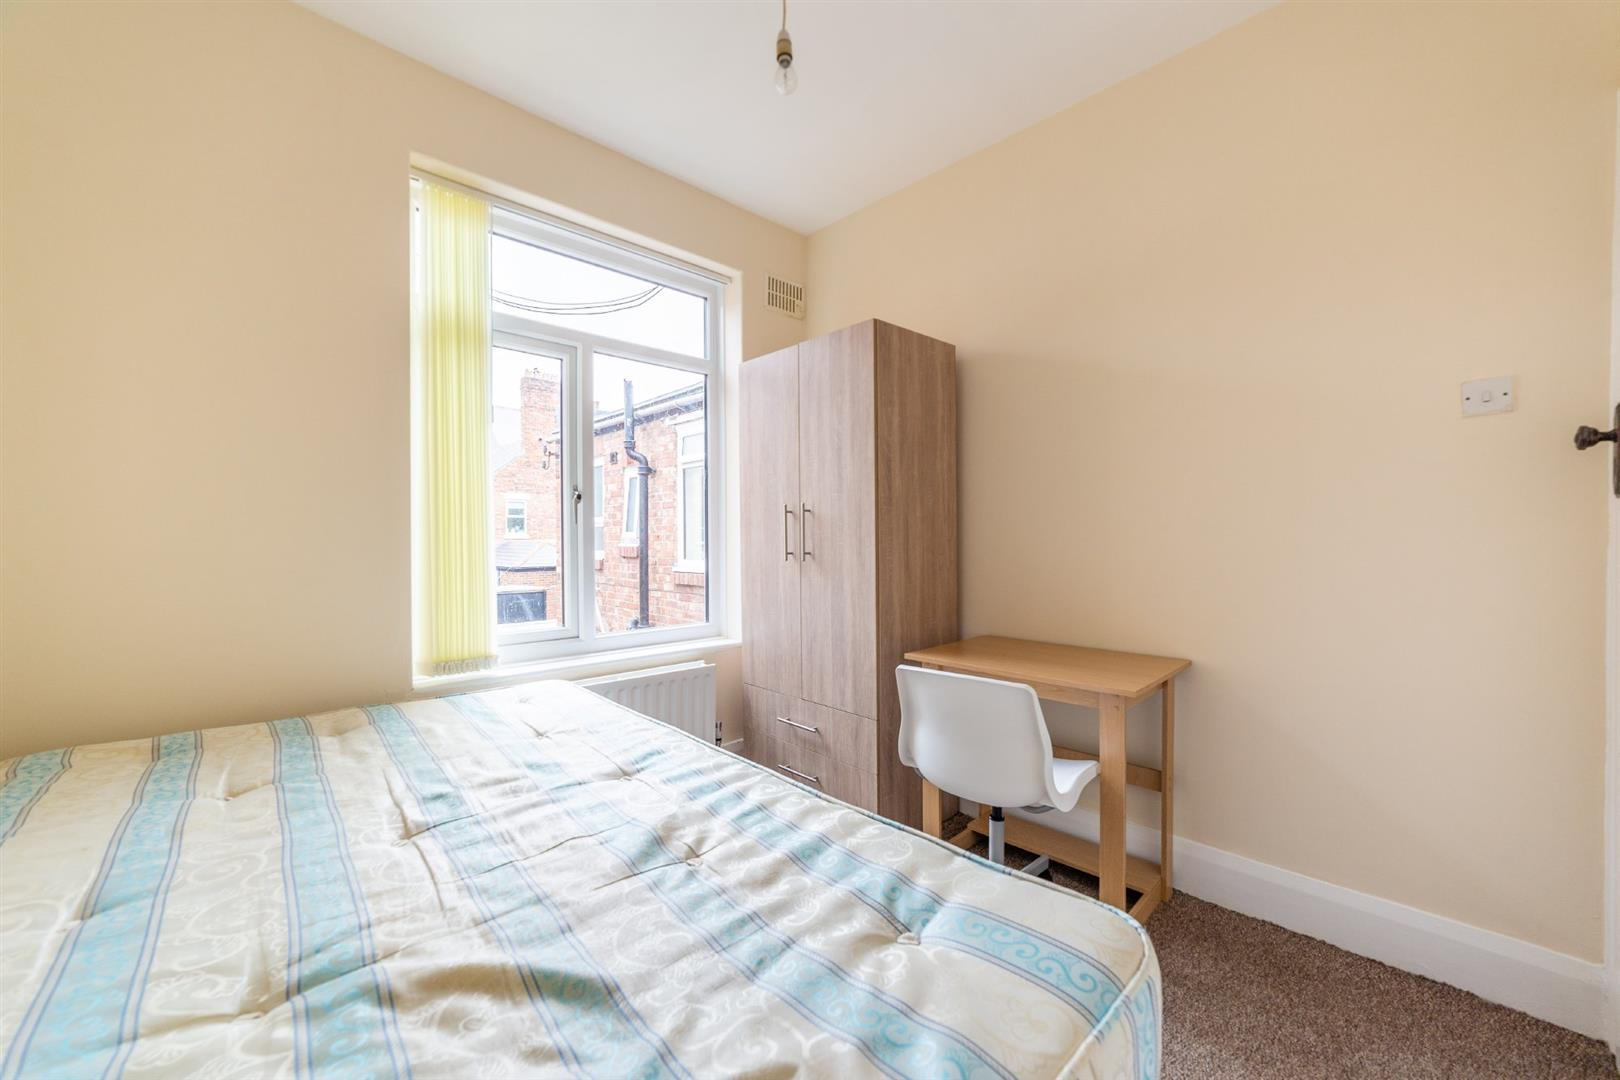 3 bed flat to rent in Newcastle Upon Tyne, NE2 2JS  - Property Image 7